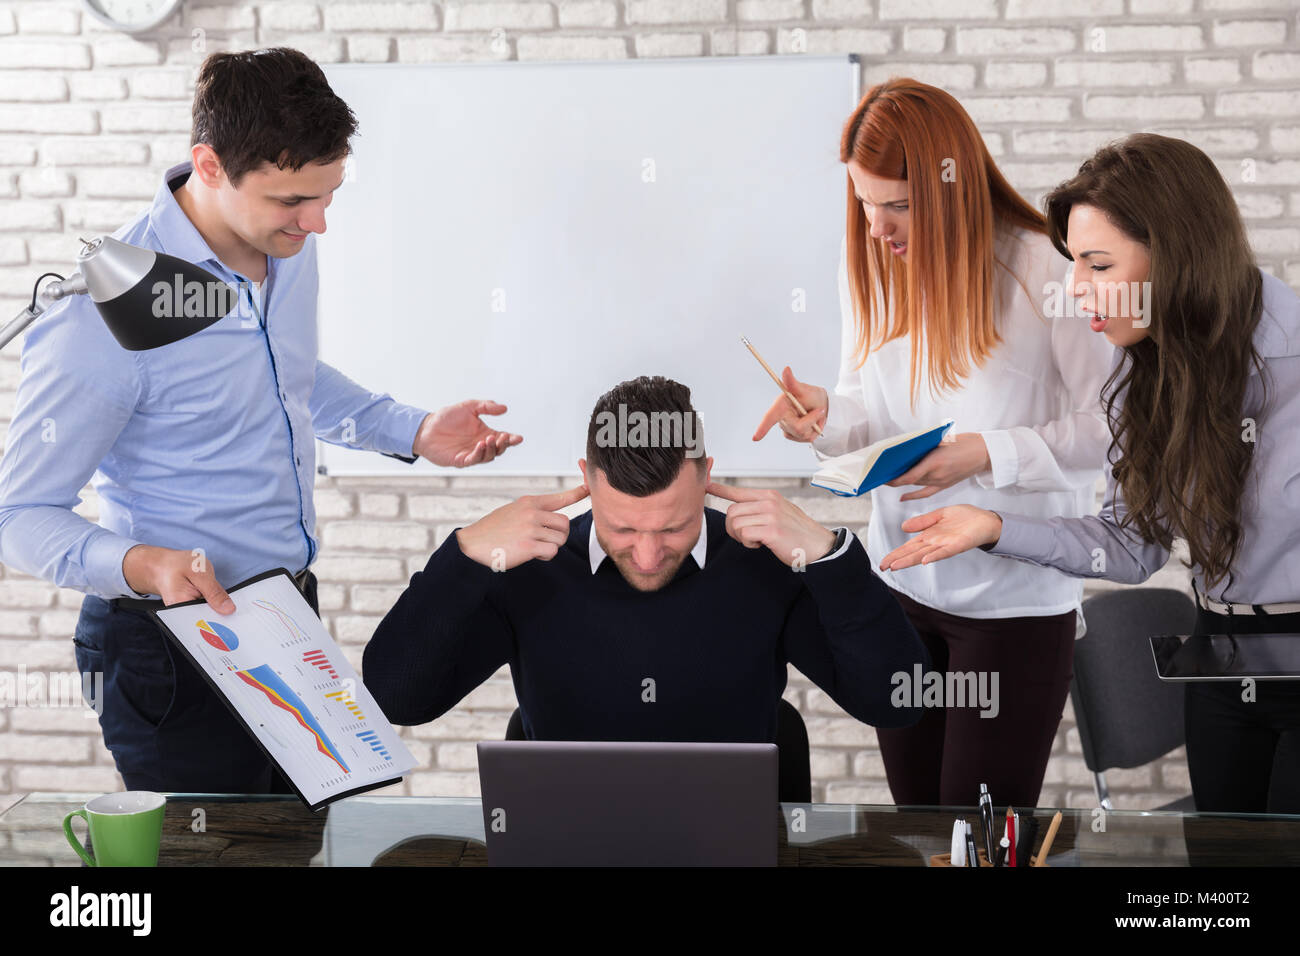 Angry Business People Pointing At Male Colleague During Meeting In Office - Stock Image